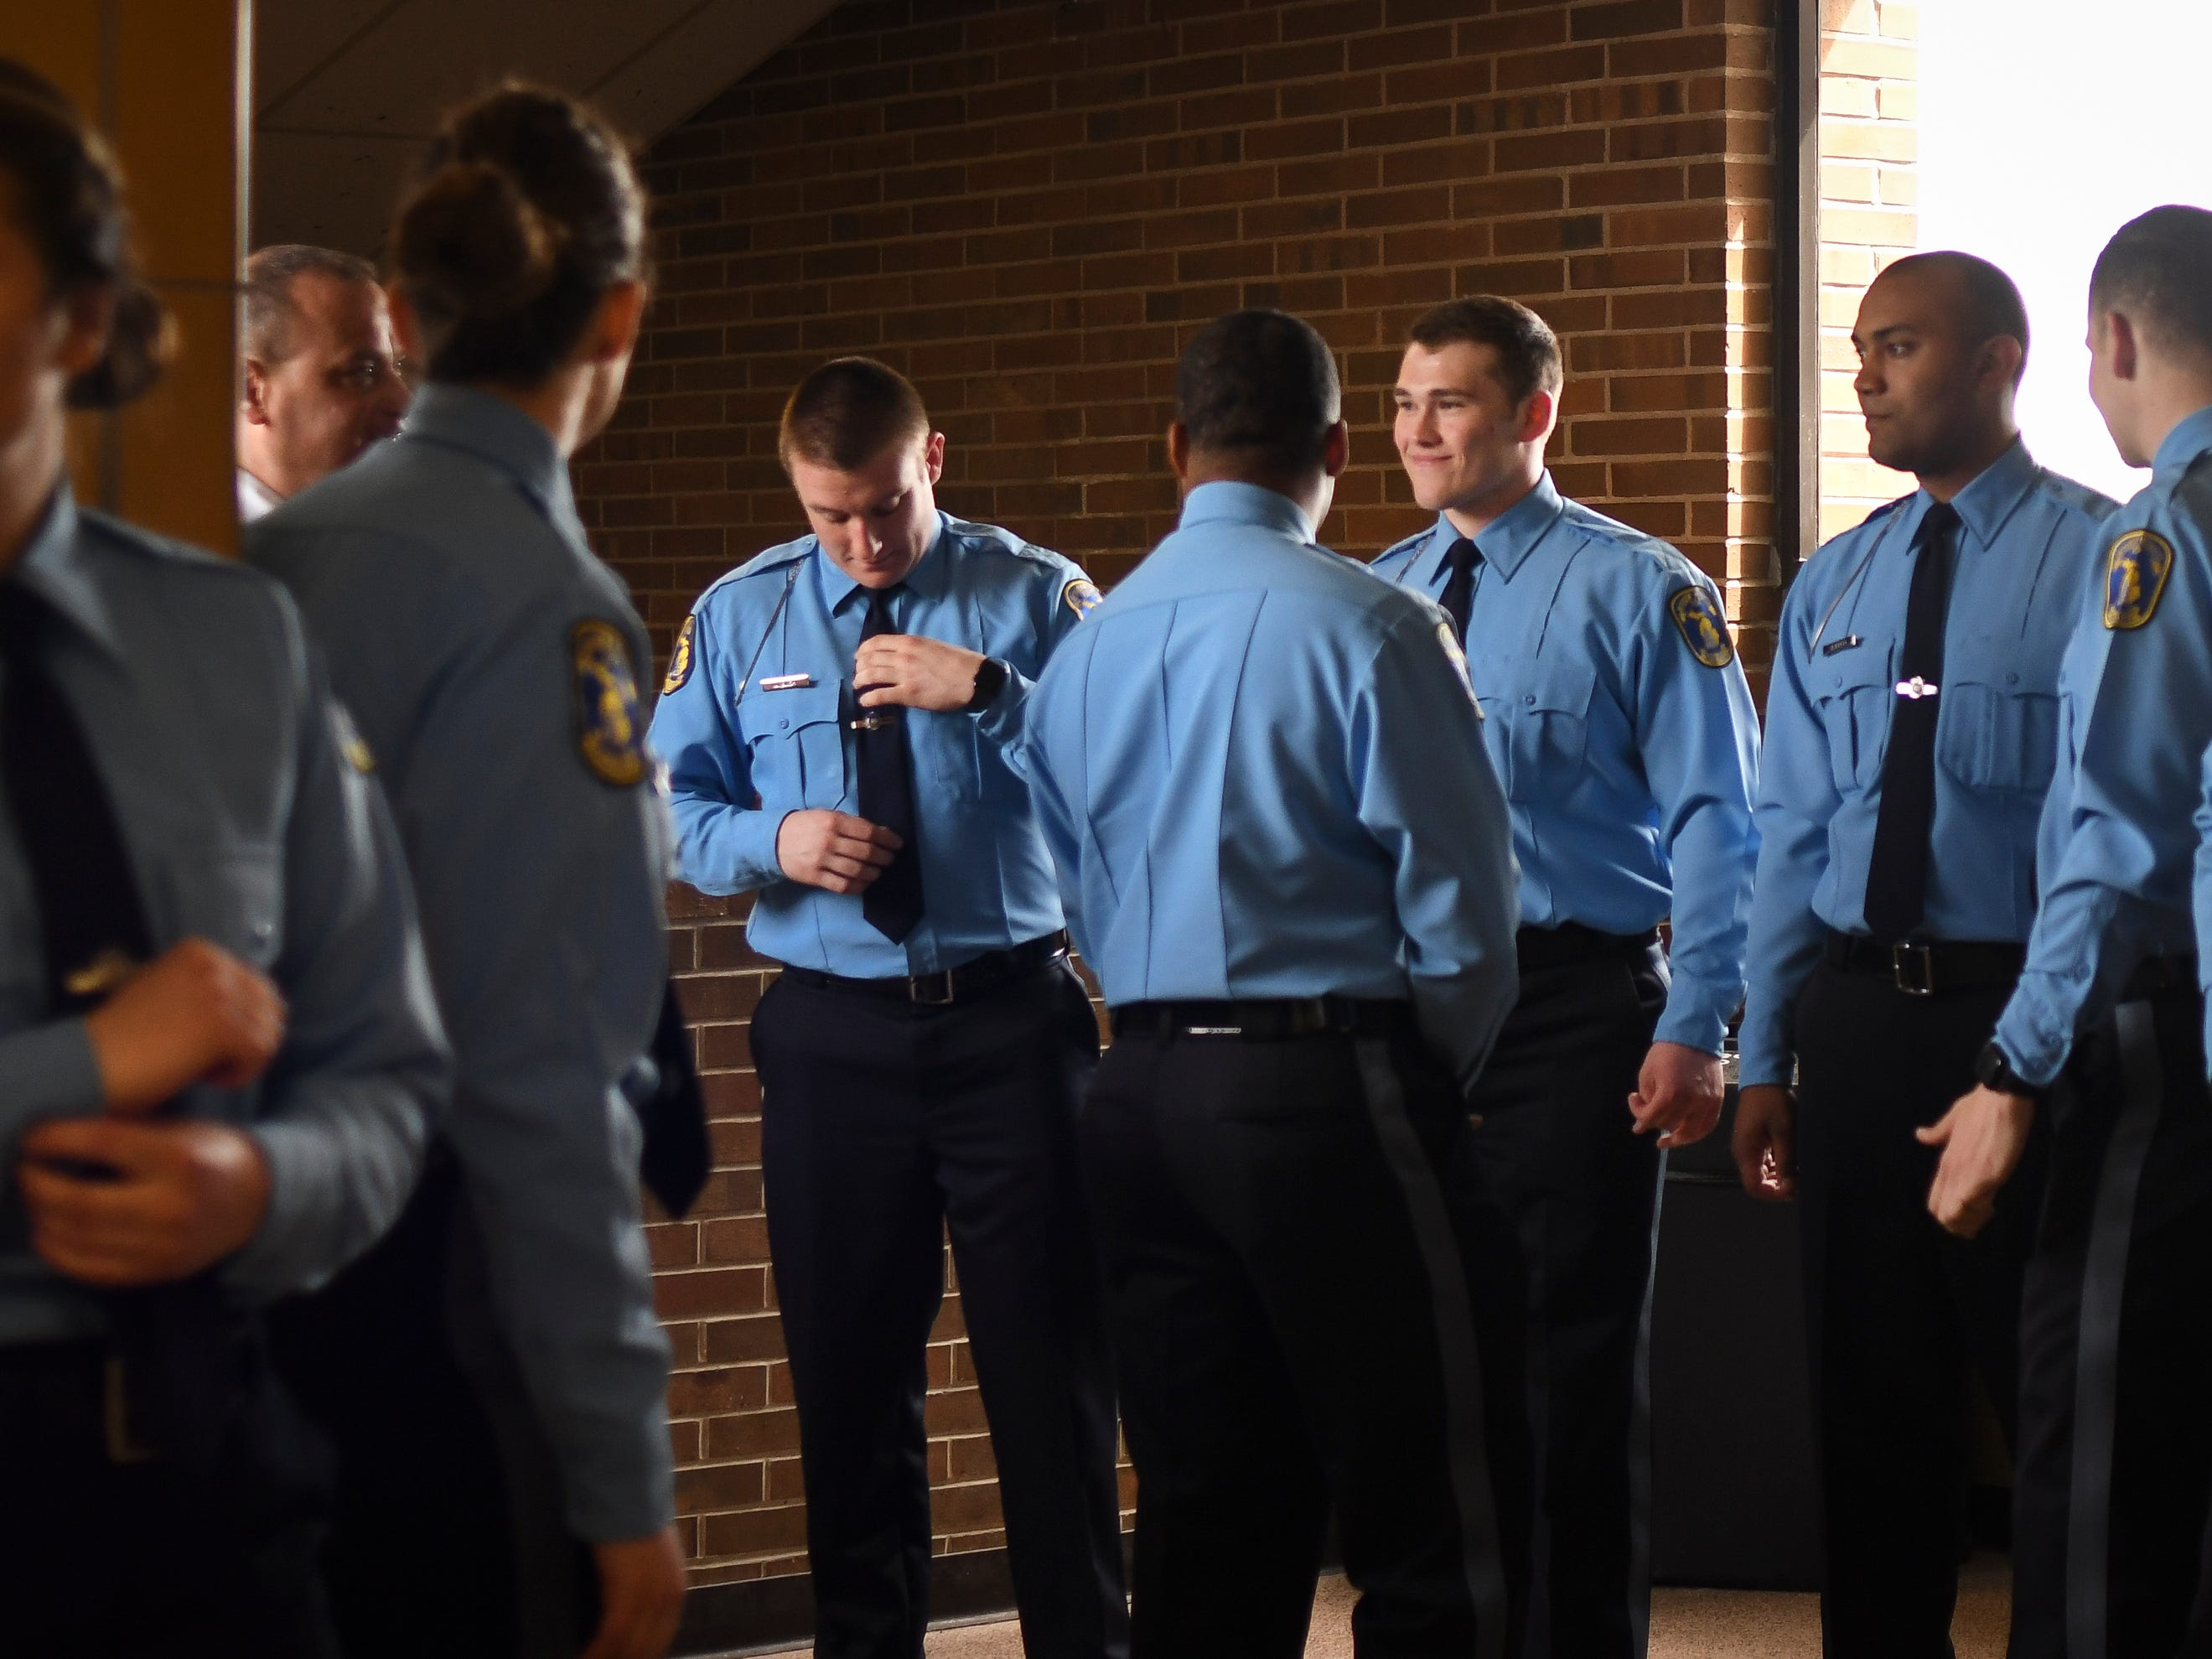 Young men and women wearing Lansing Police Department blues prepare for their swearing in ceremony, Monday, May 6, 2019, at the LPD Special Operations Center in Lansing.